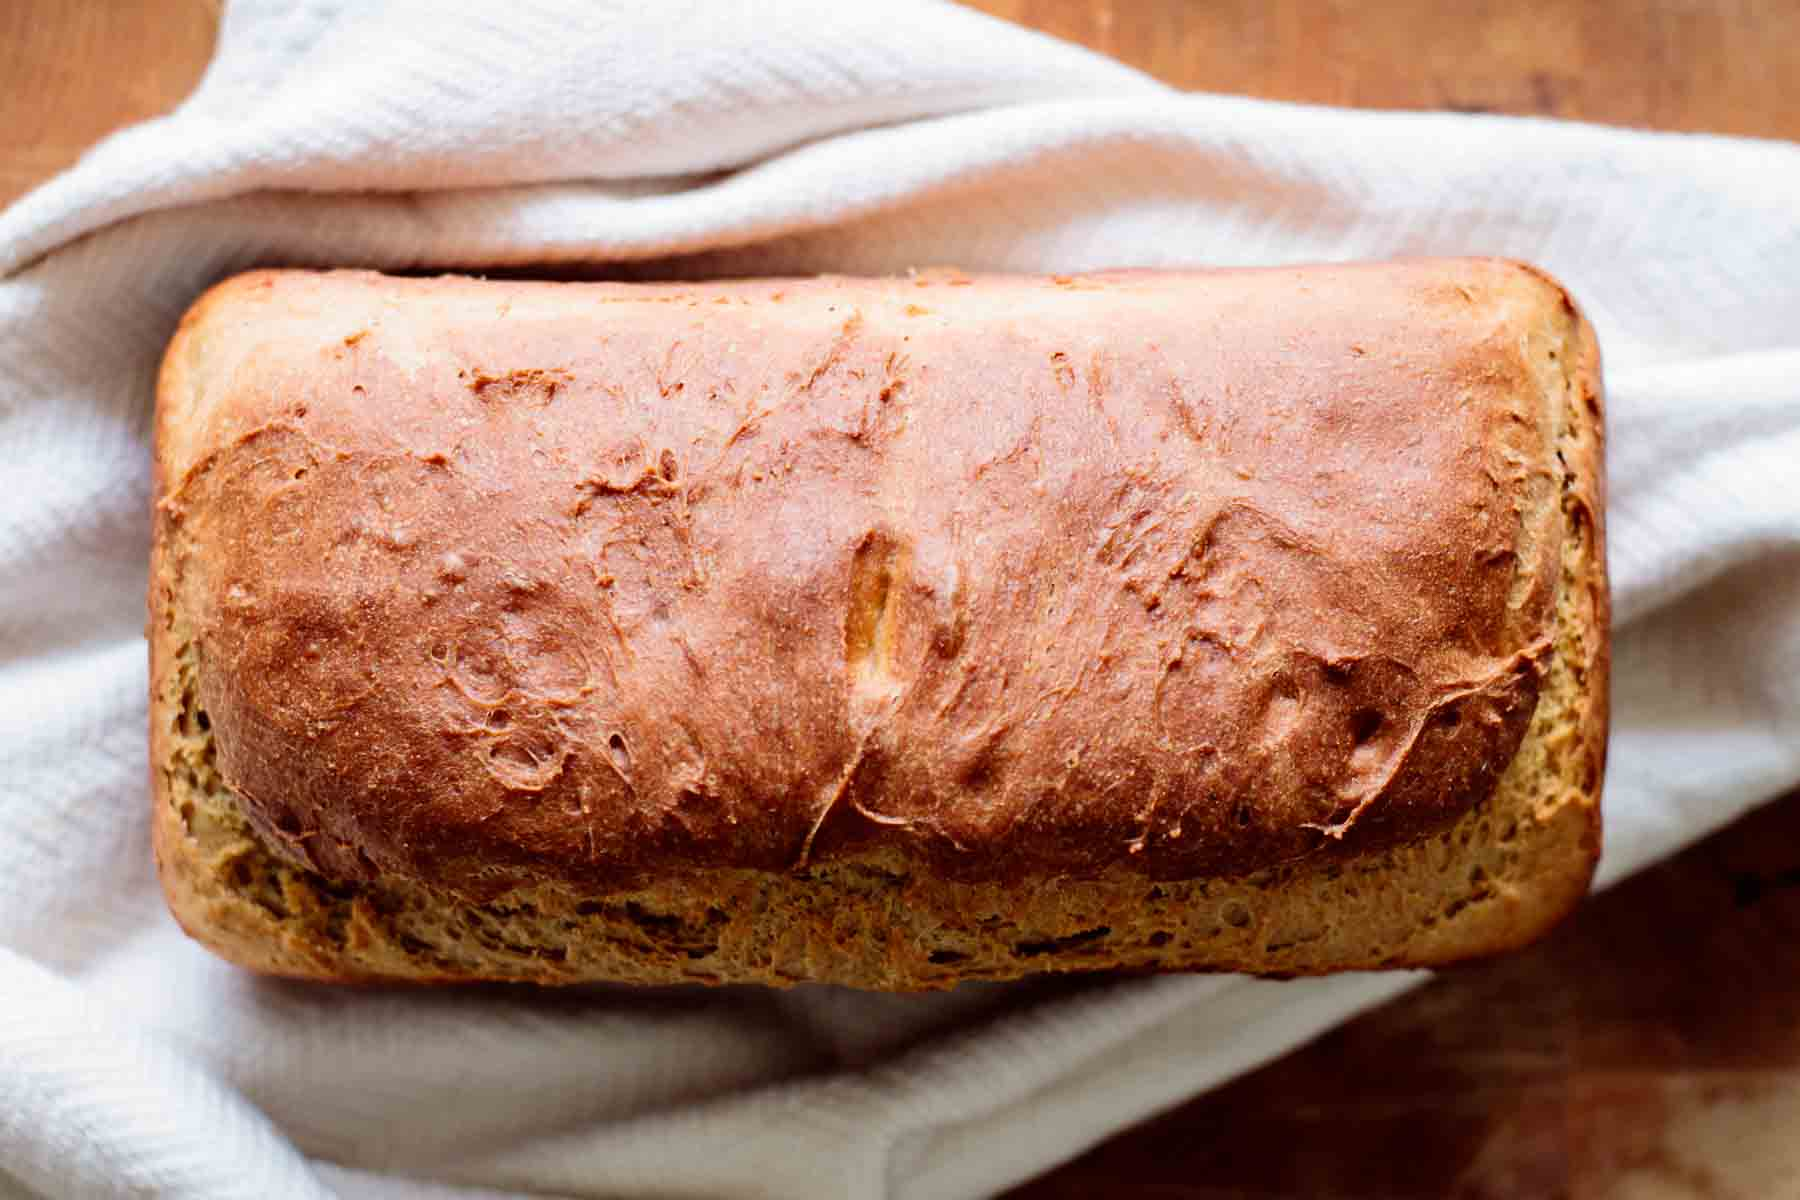 bread resting on a kitchen towel